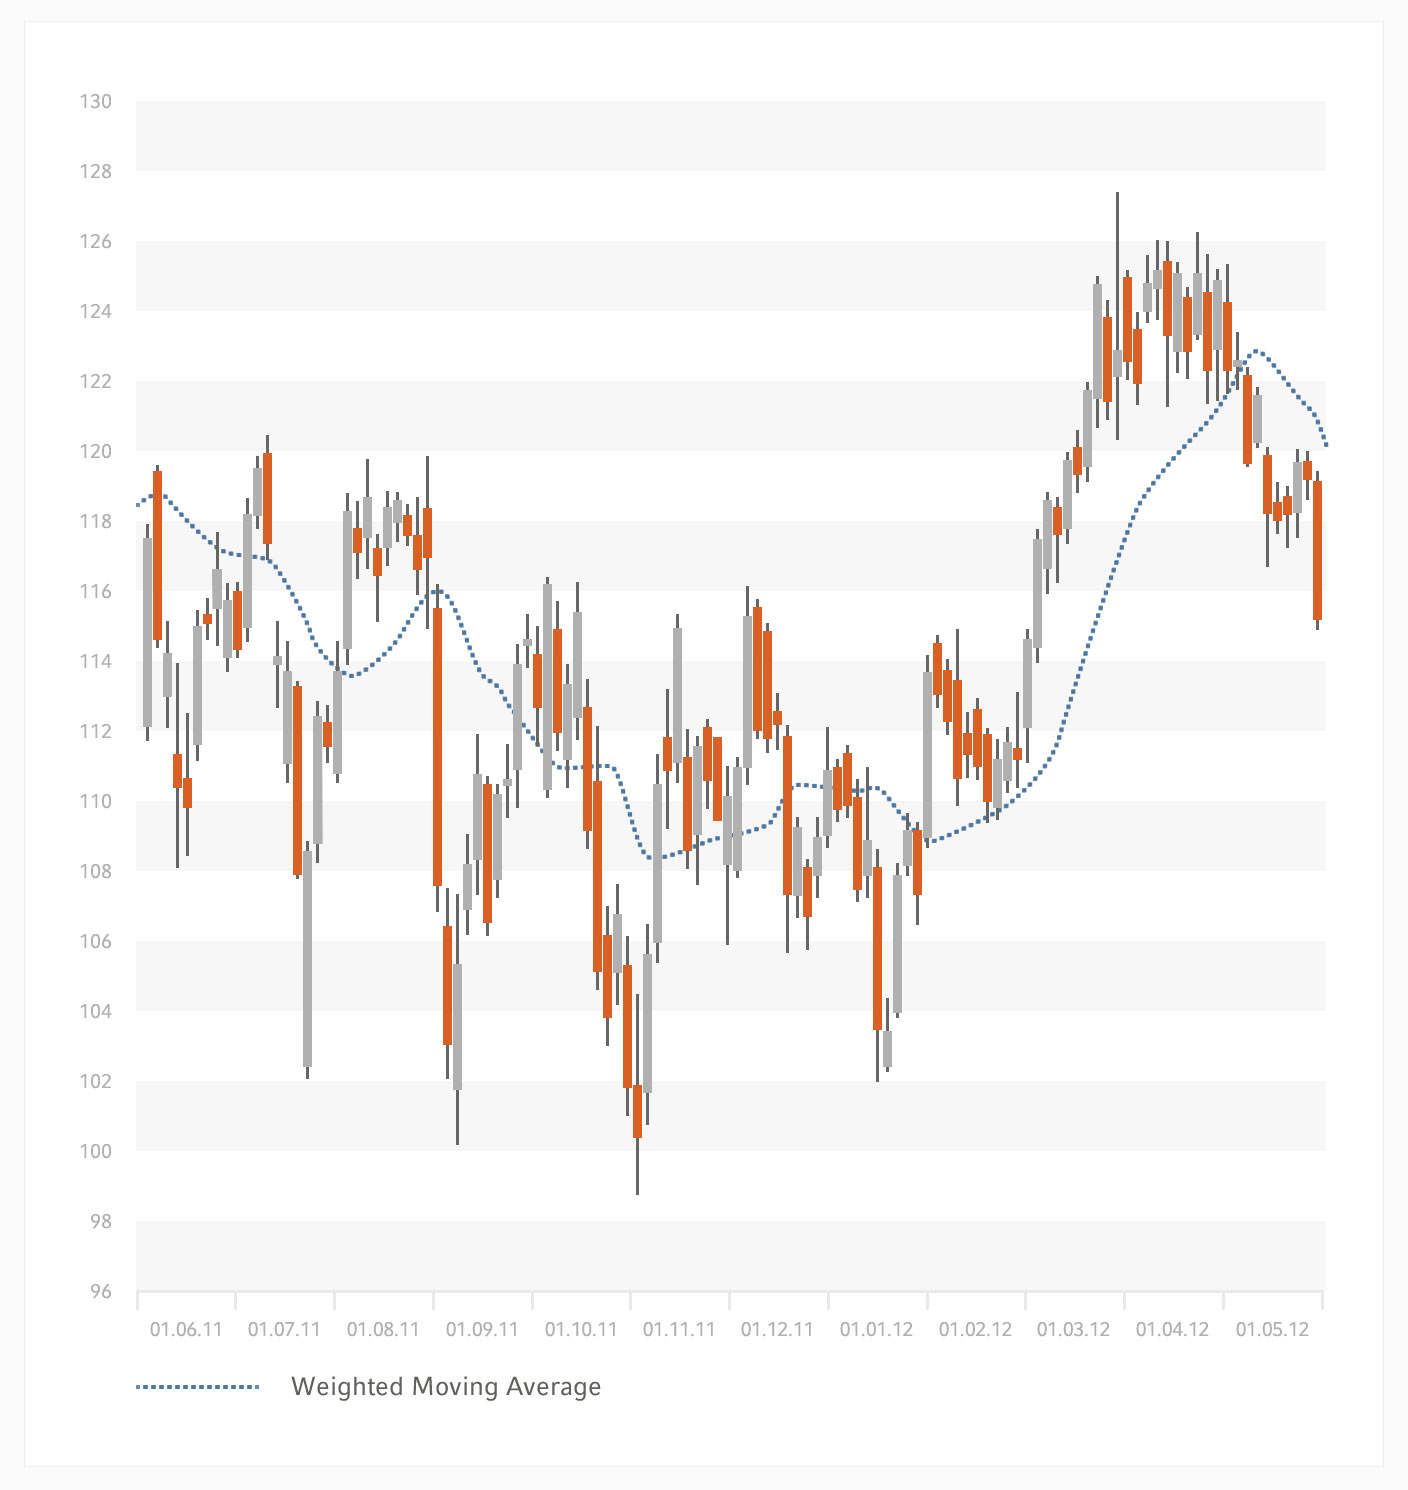 Weighted-Moving-Average.jpg